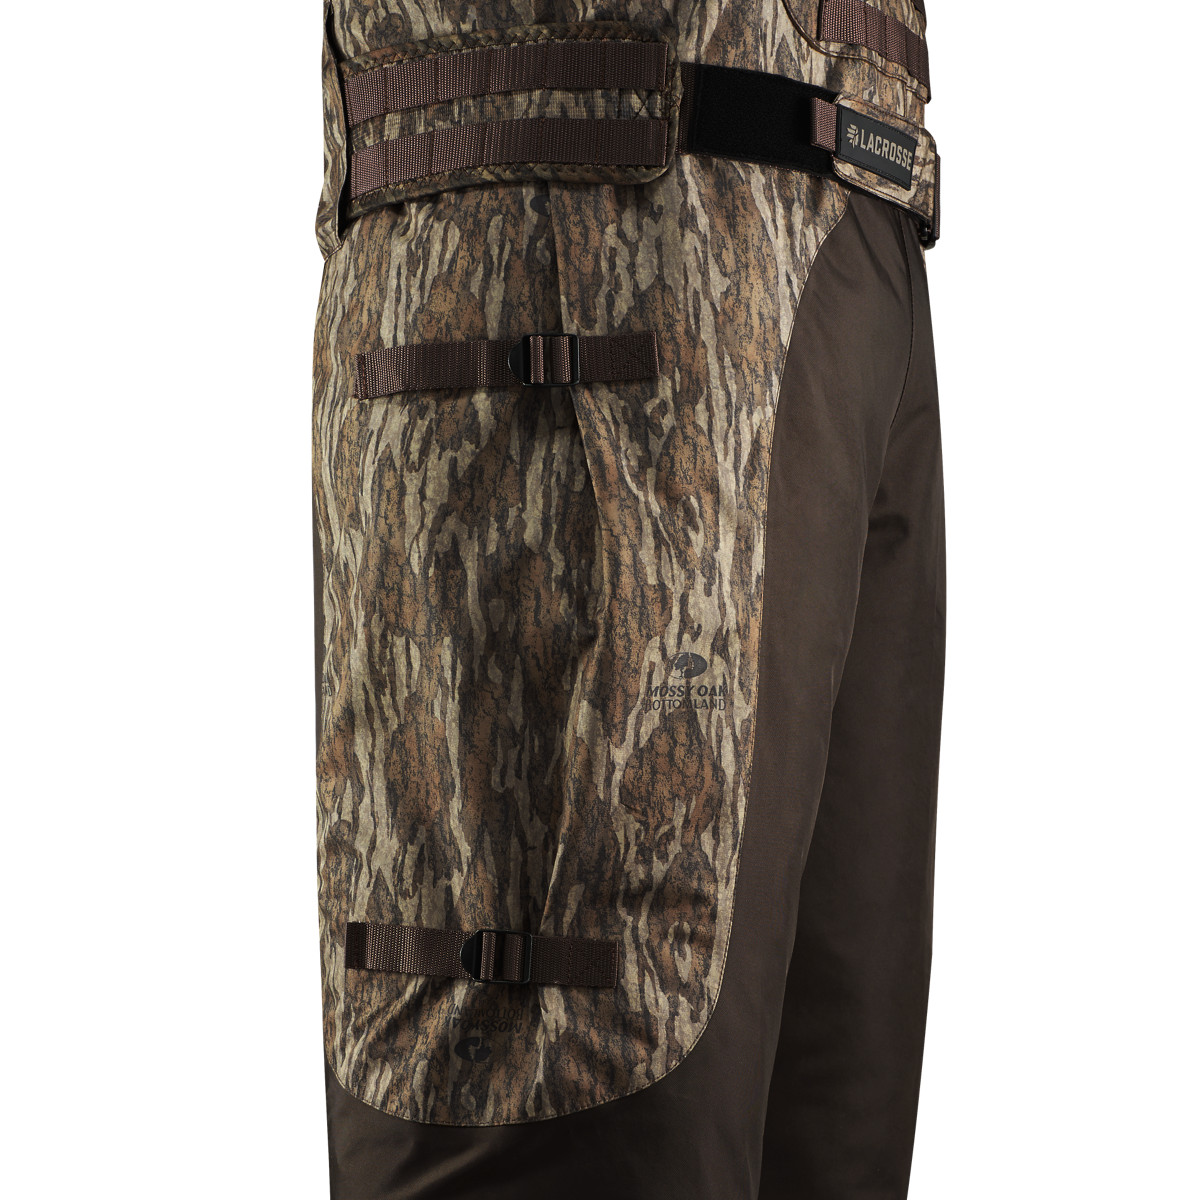 Aero Elite Breathable Mossy Oak Bottomland 7.0MM